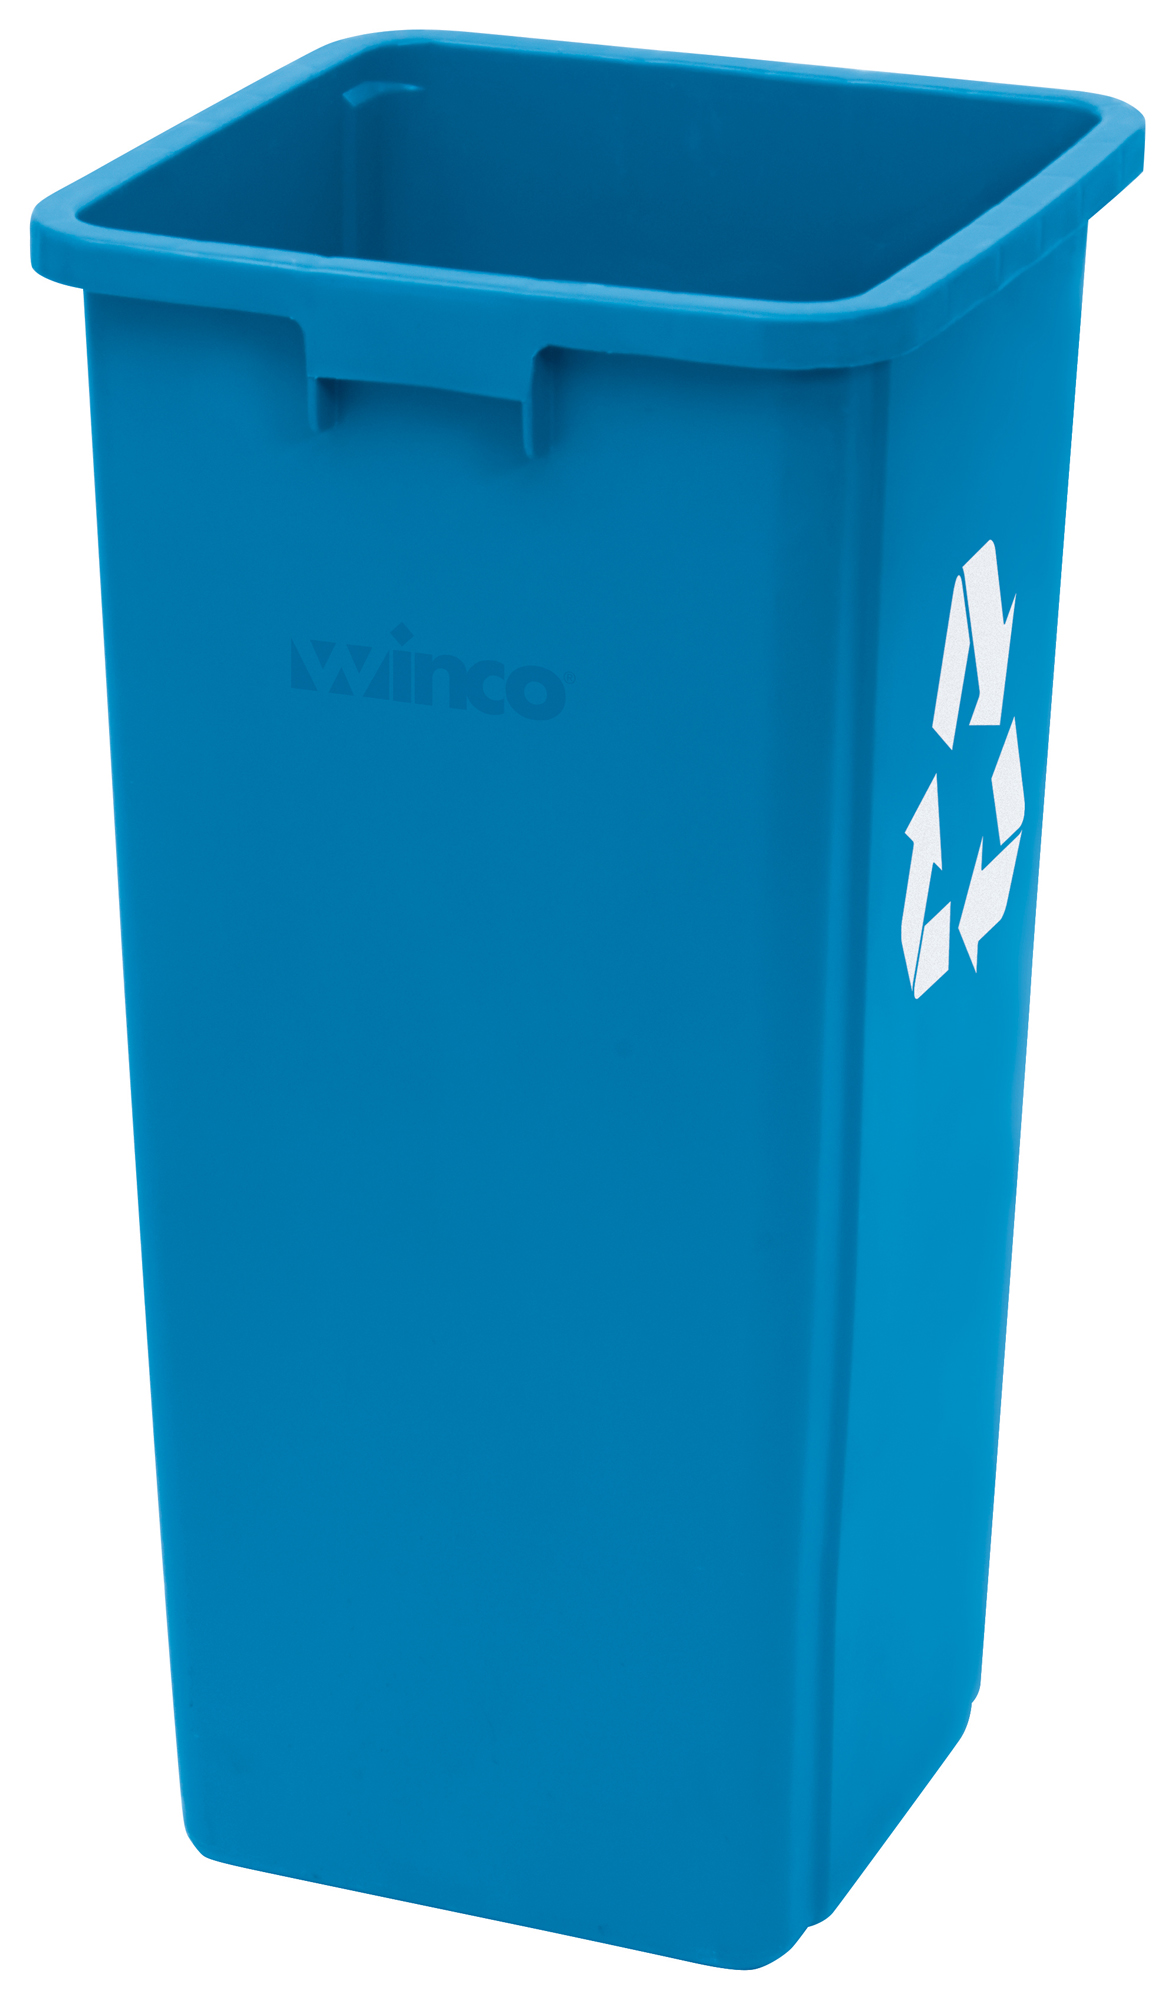 Winco PTCS-23L trash cans & accessories